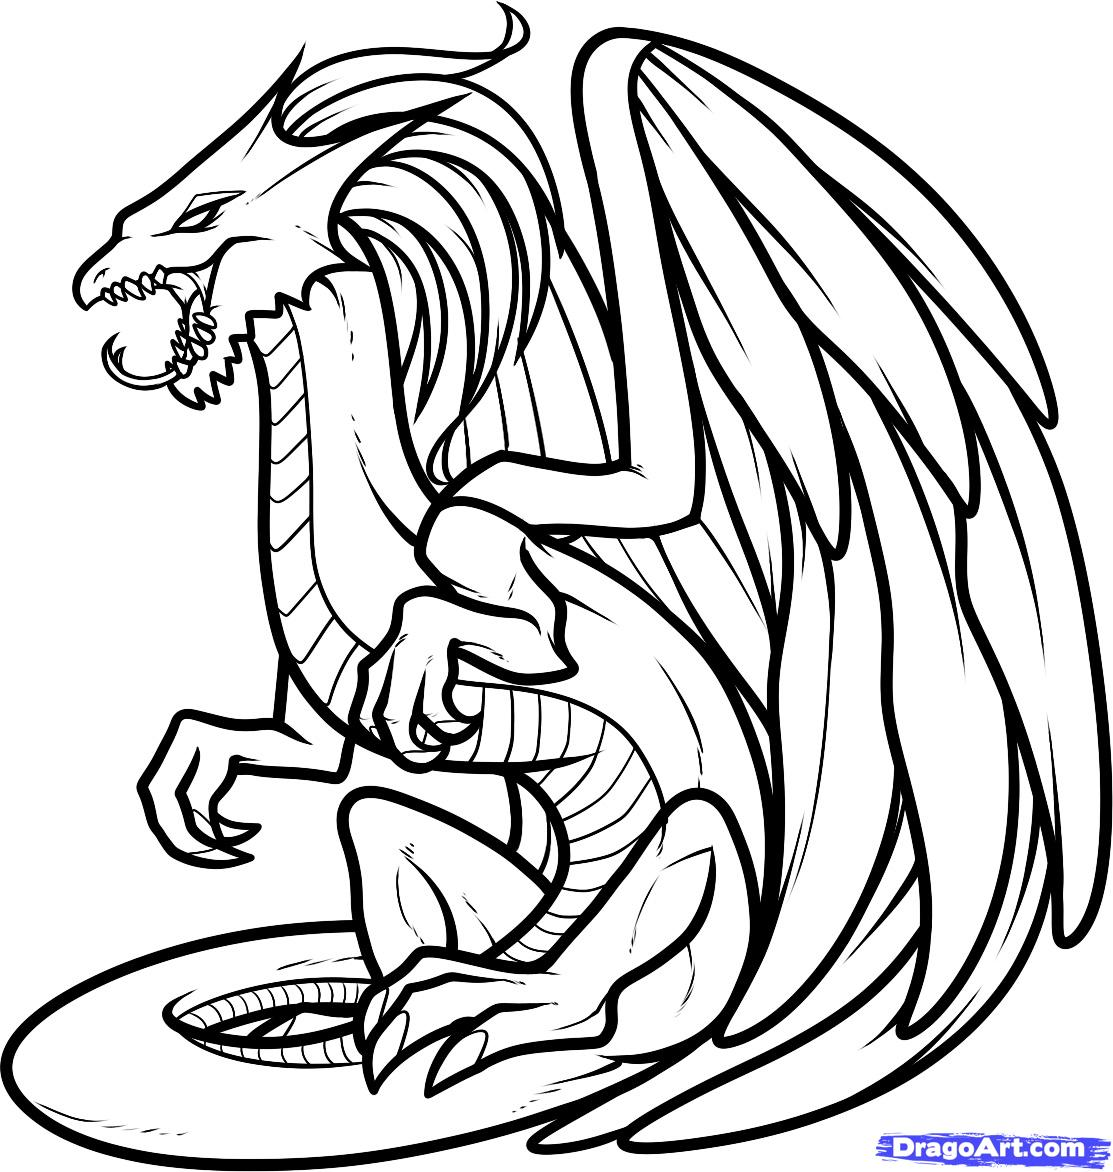 Awesome Dragon Coloring Pages at GetDrawings.com | Free for ...